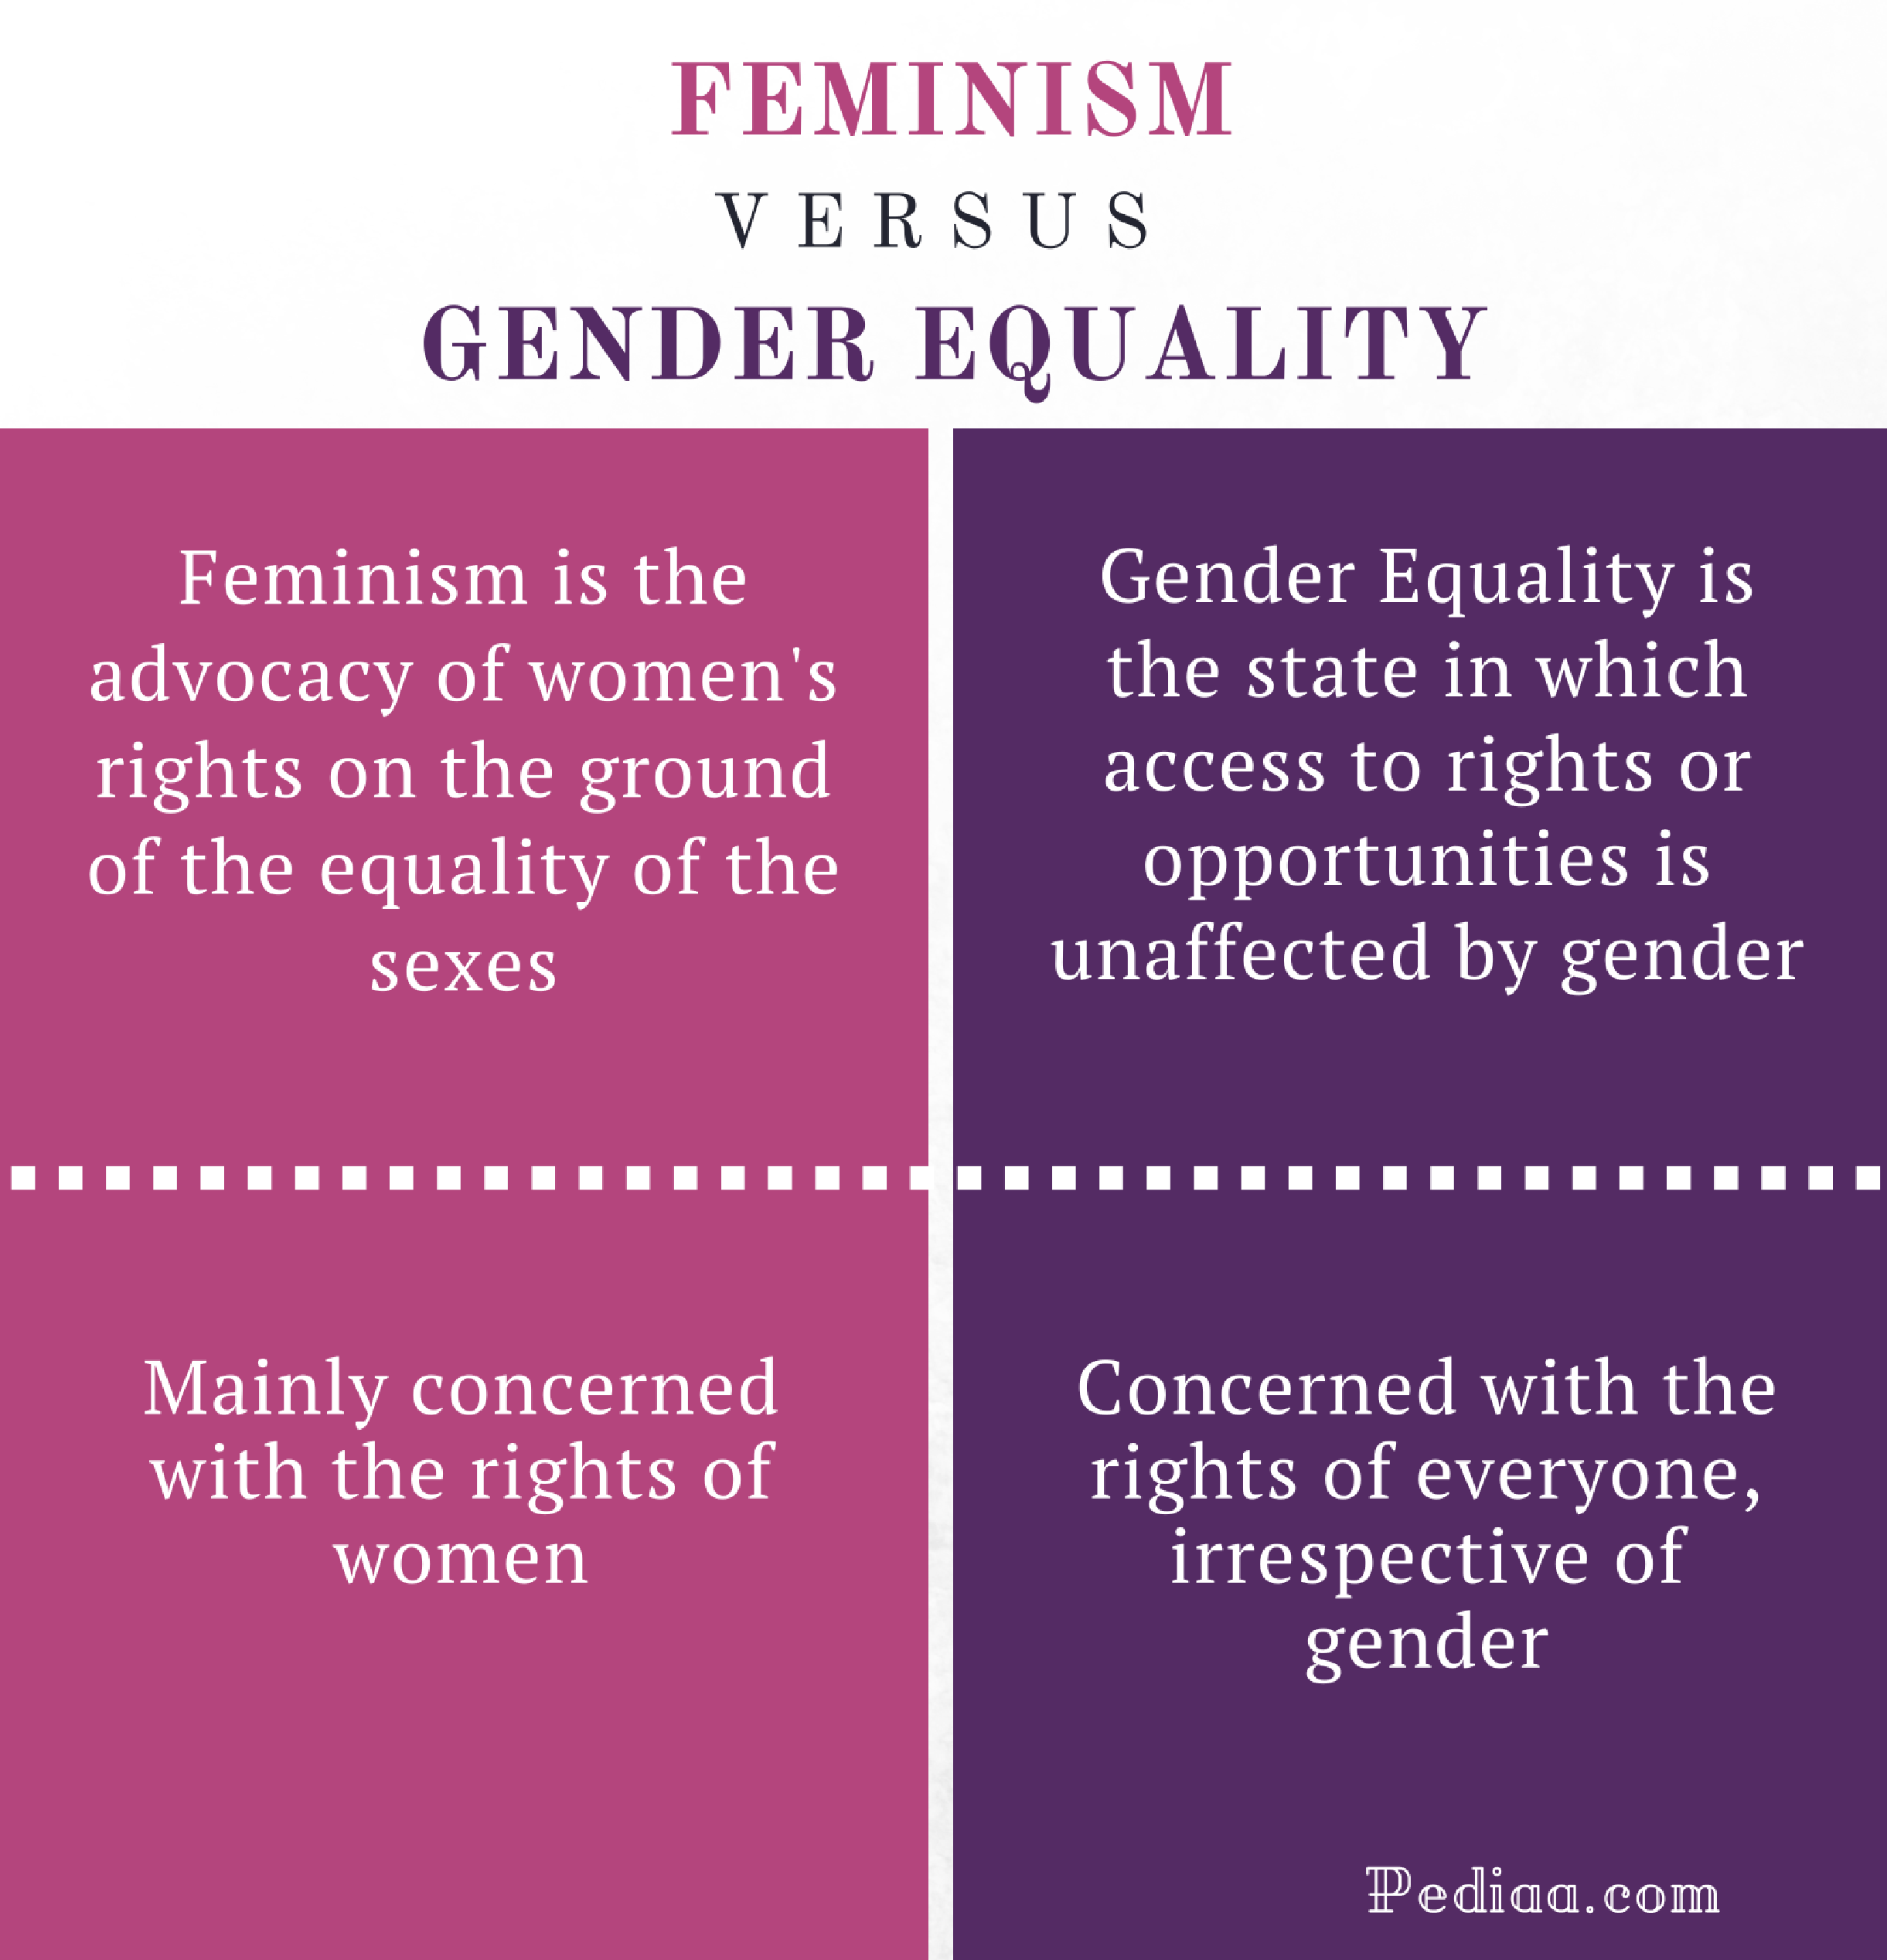 Difference Between Feminism and Gender Equality - Comparison Summary